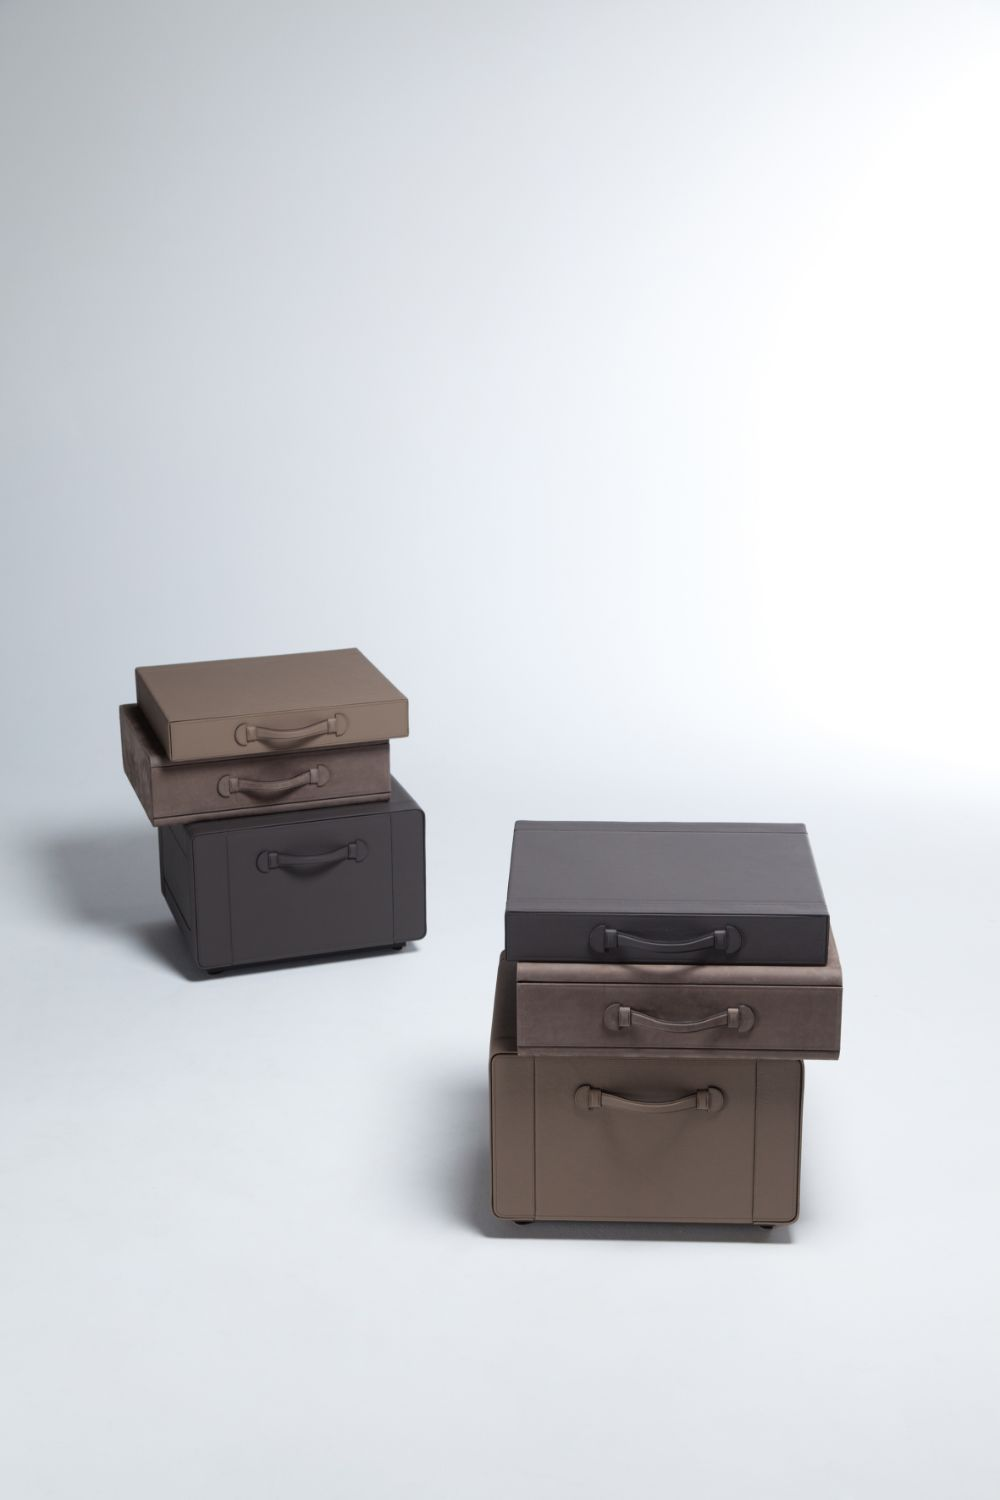 Bedside Table of Briefcases